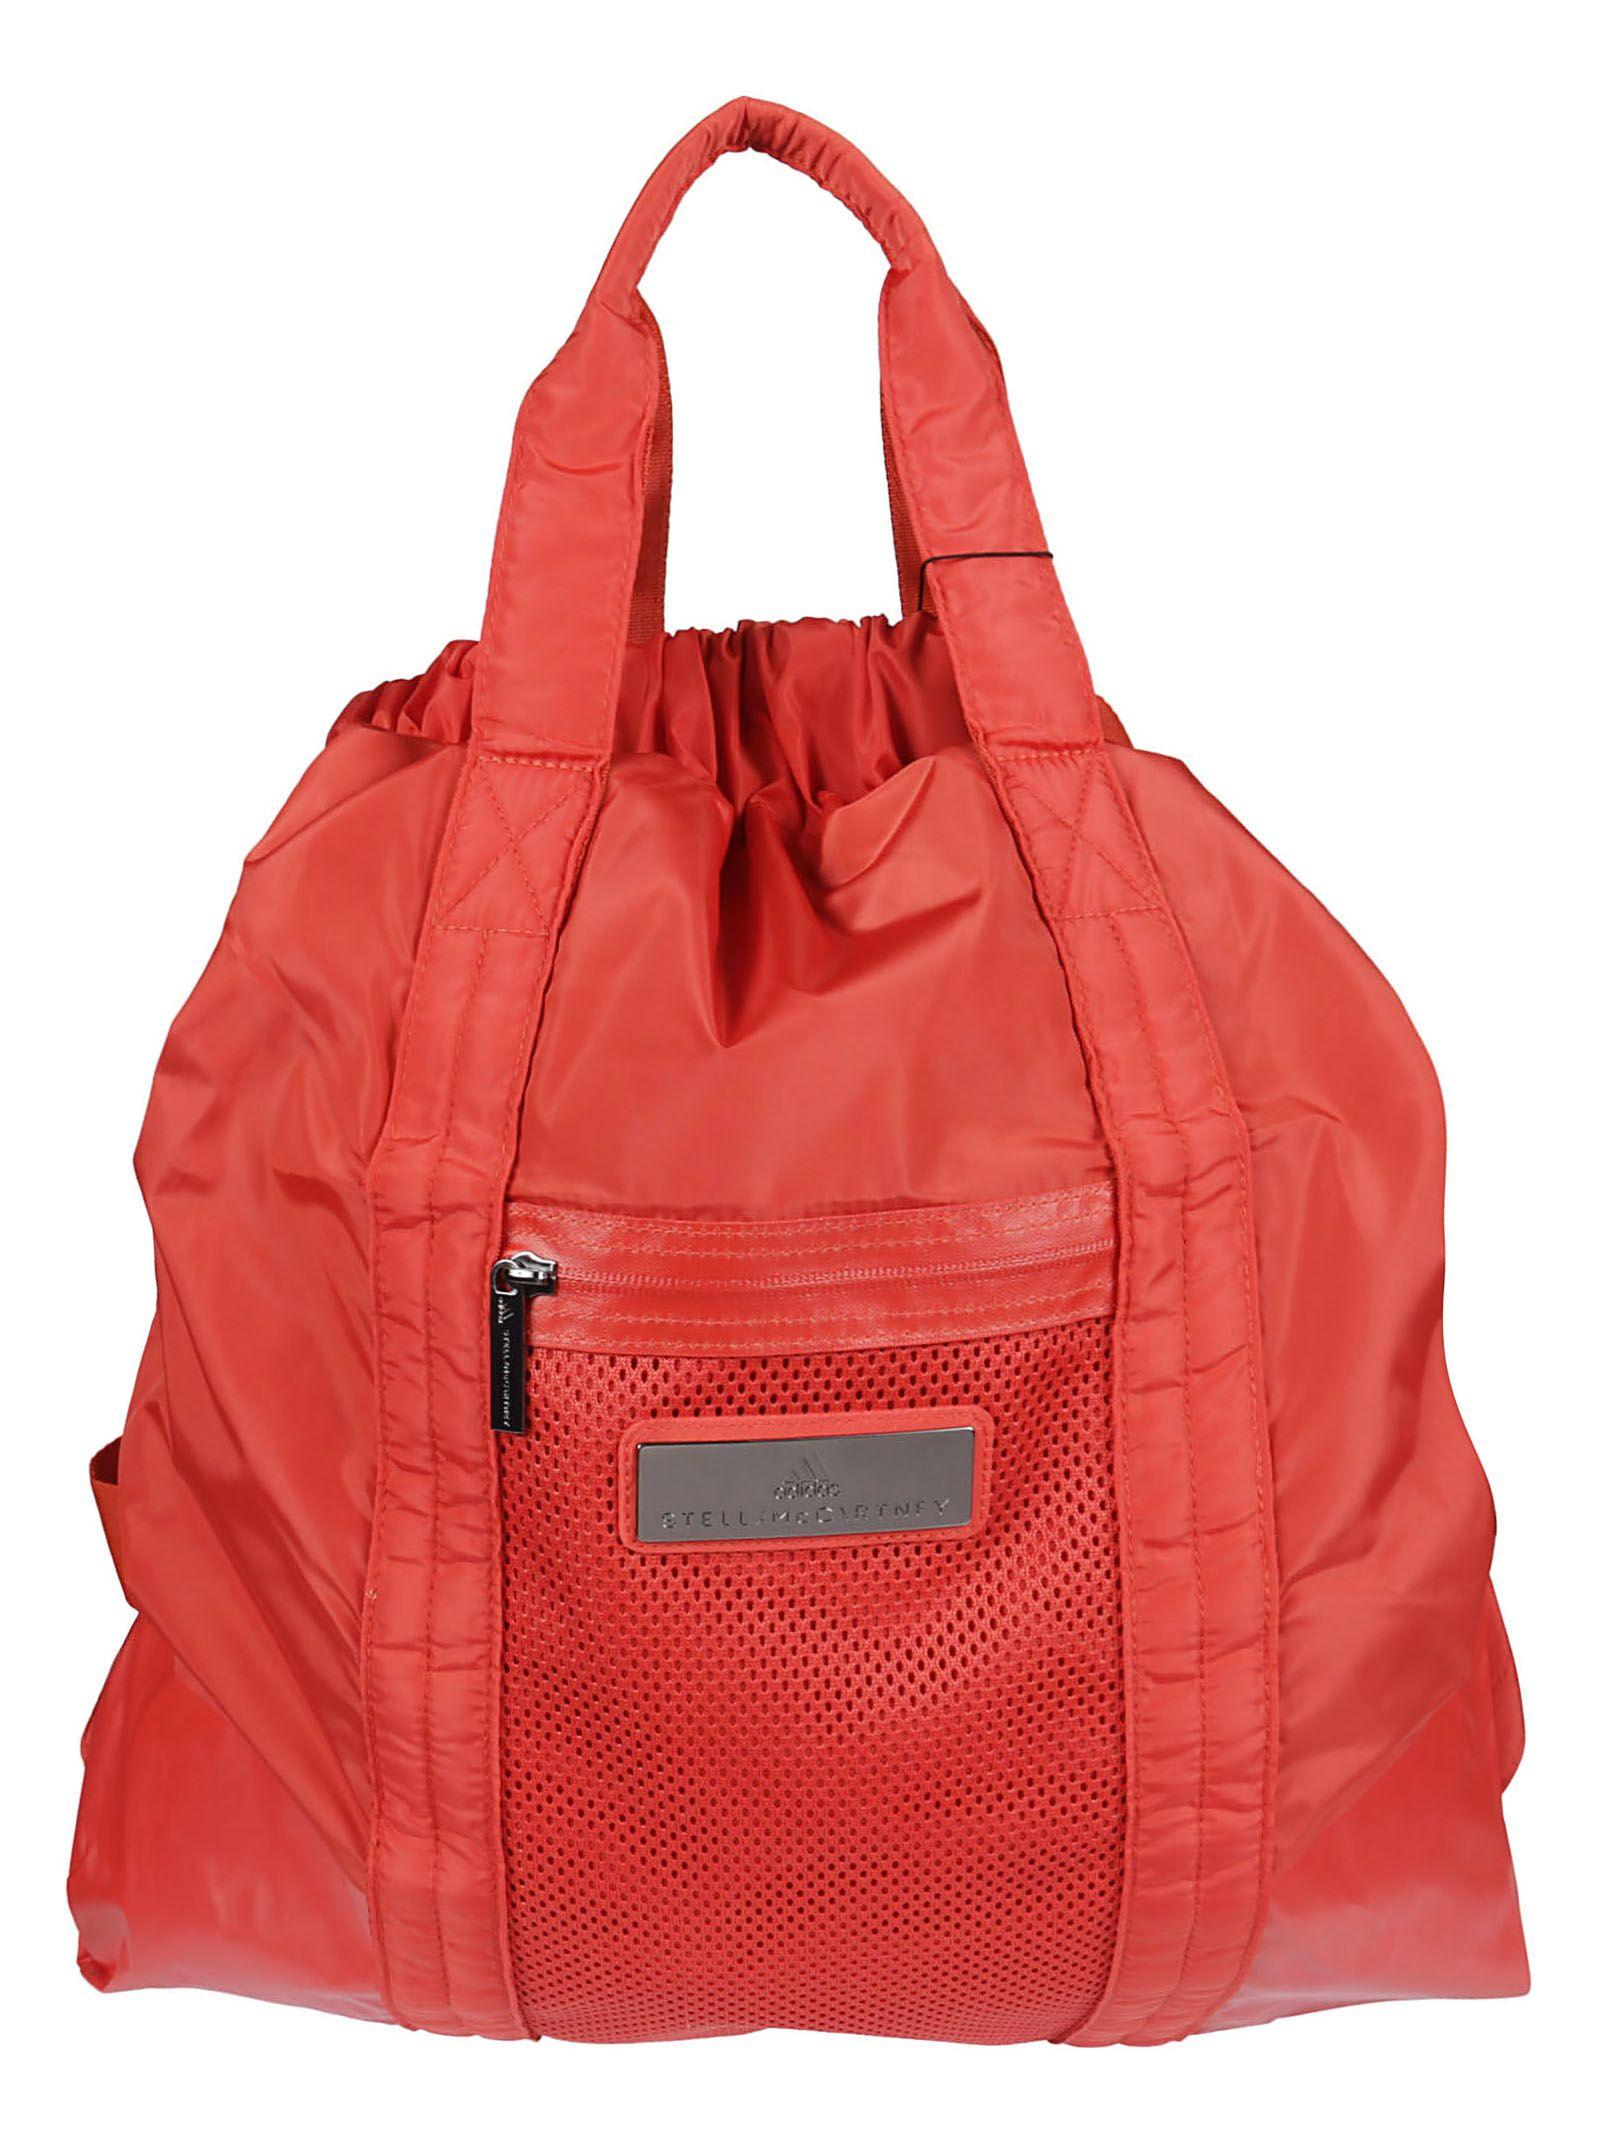 Stella Mccartney Mesh Panel Gym Backpack In Red